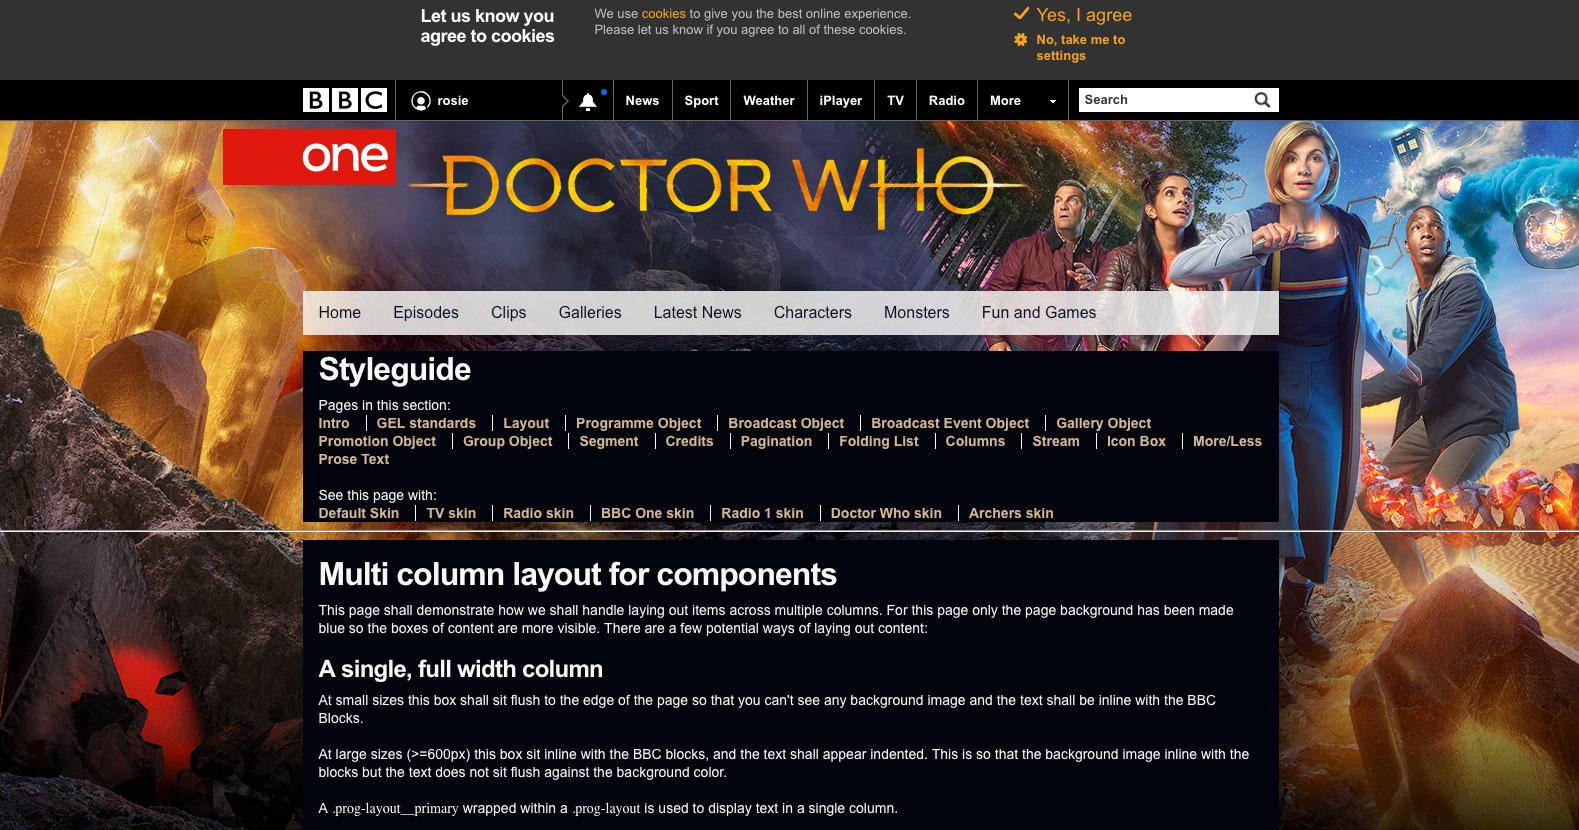 The BBC style guide